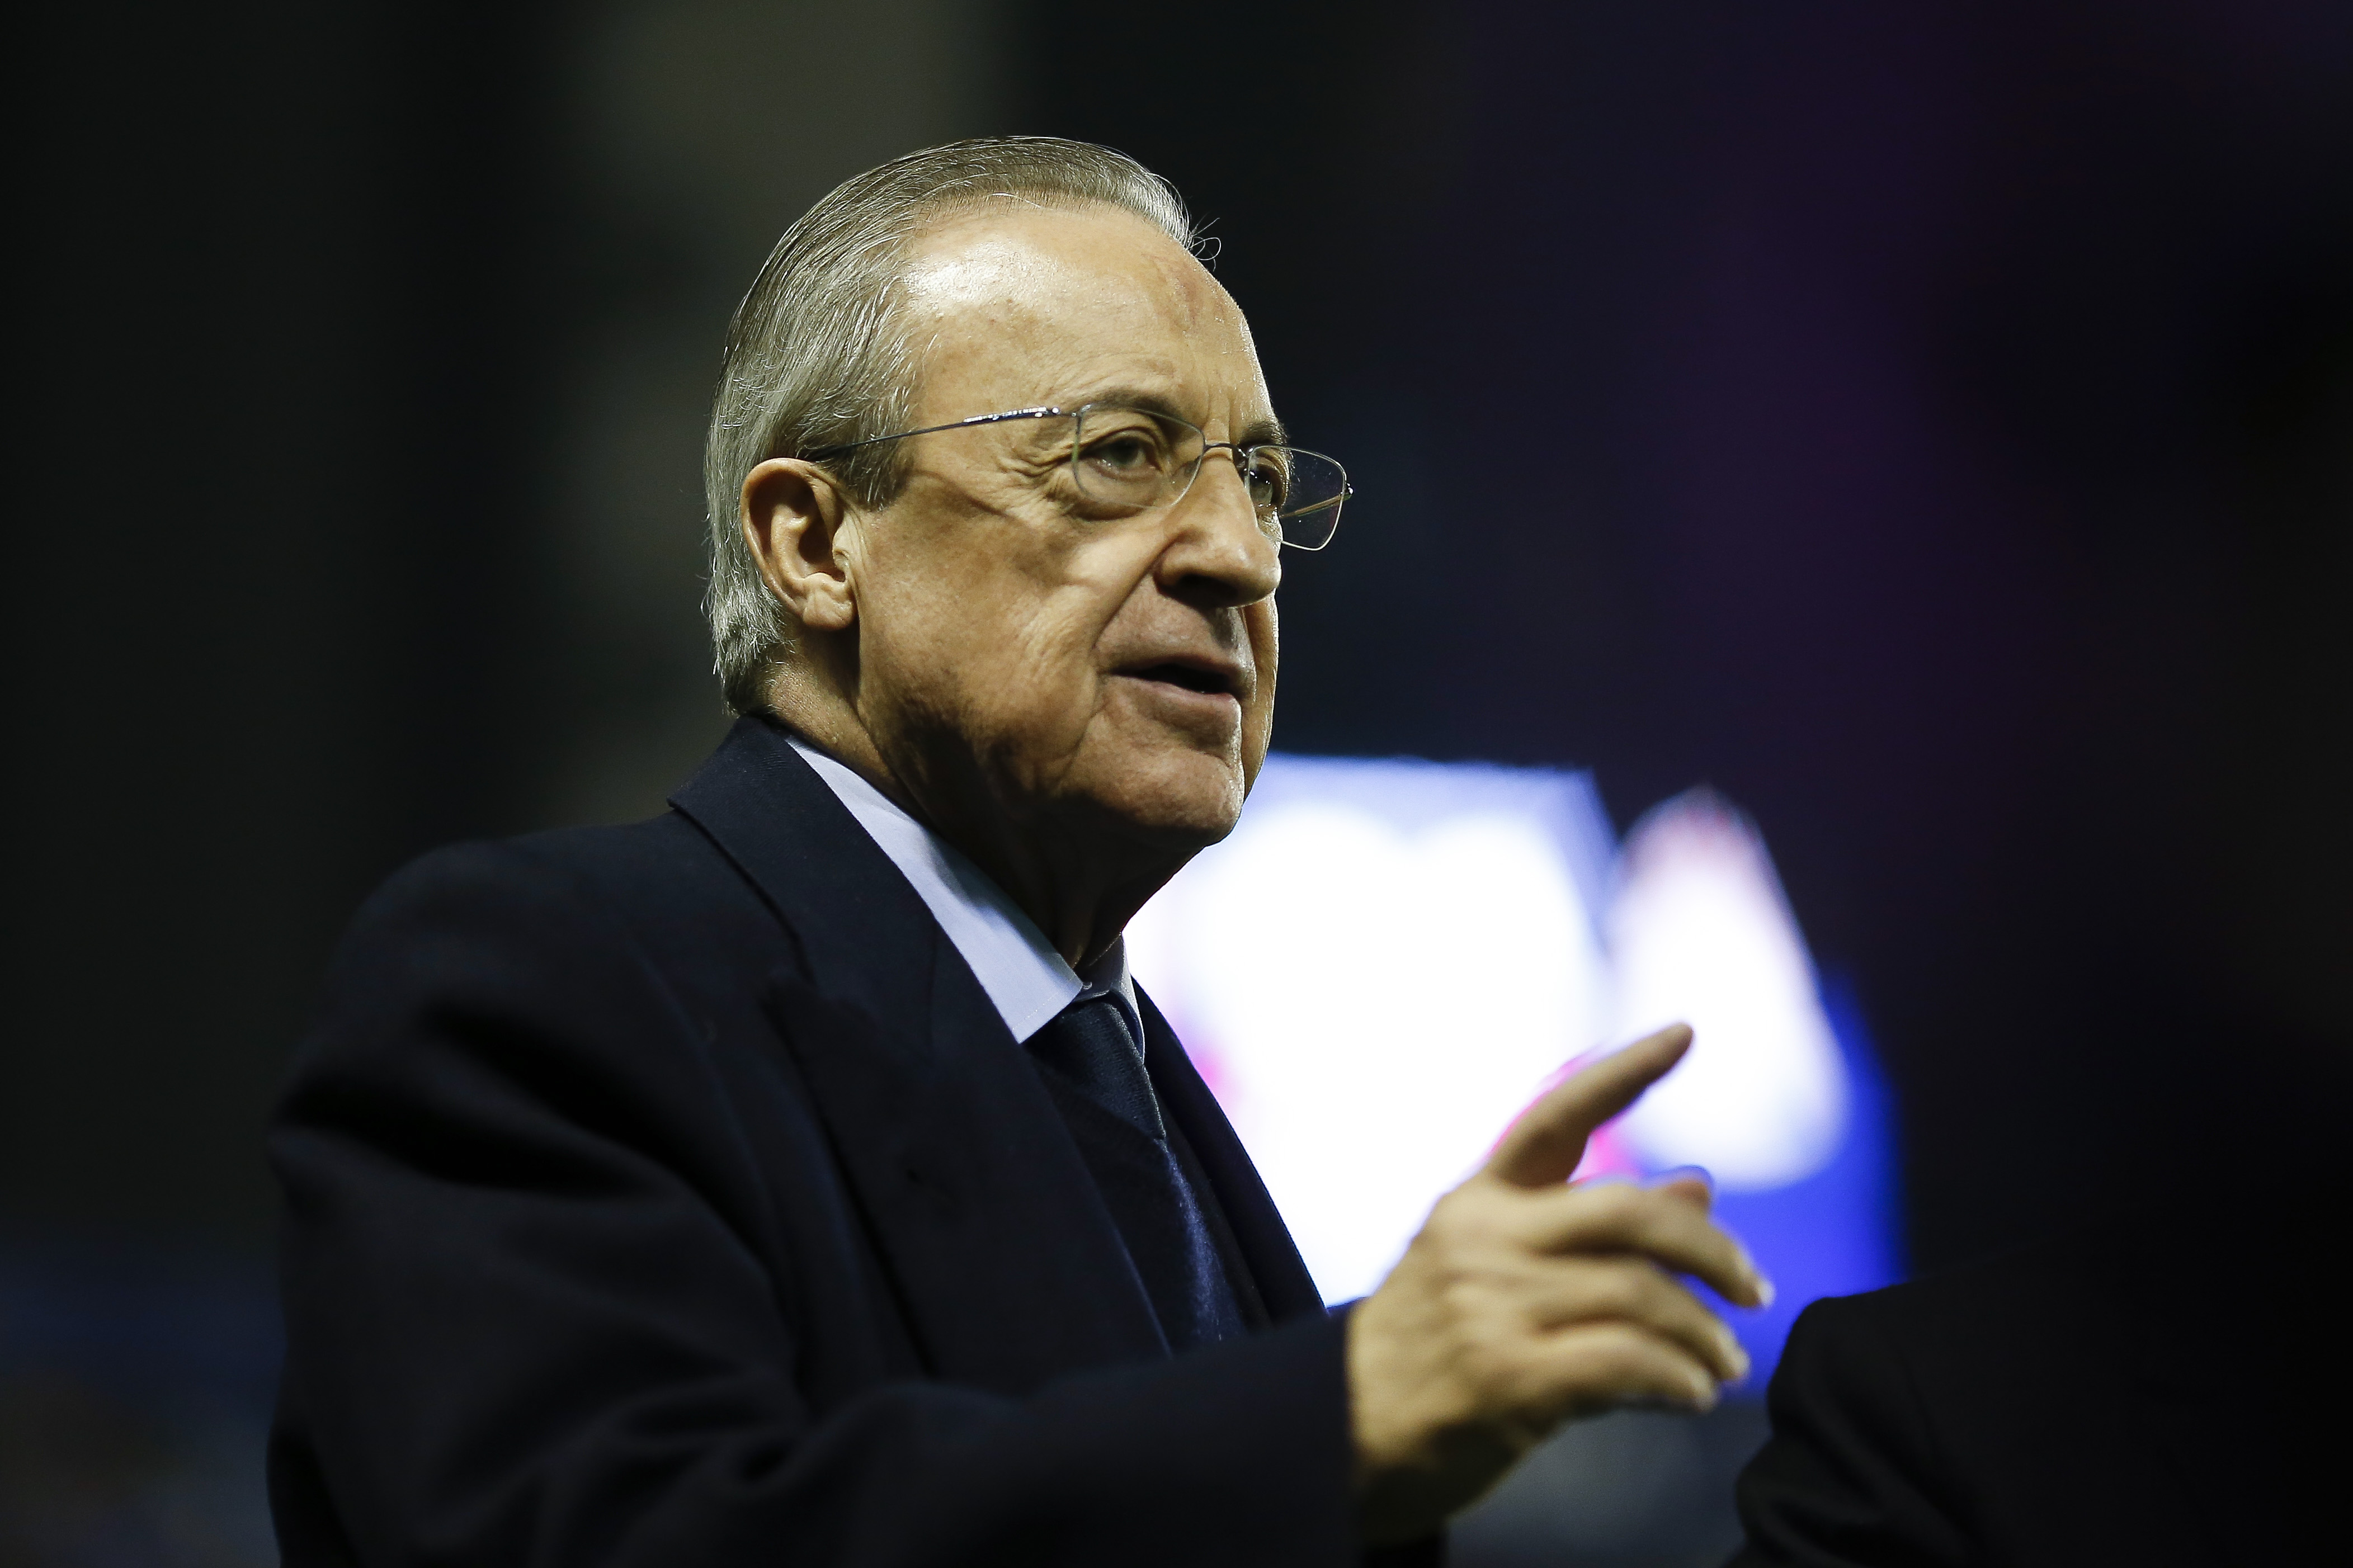 Florentino Perez has been in charge at Real Madrid since 2009.